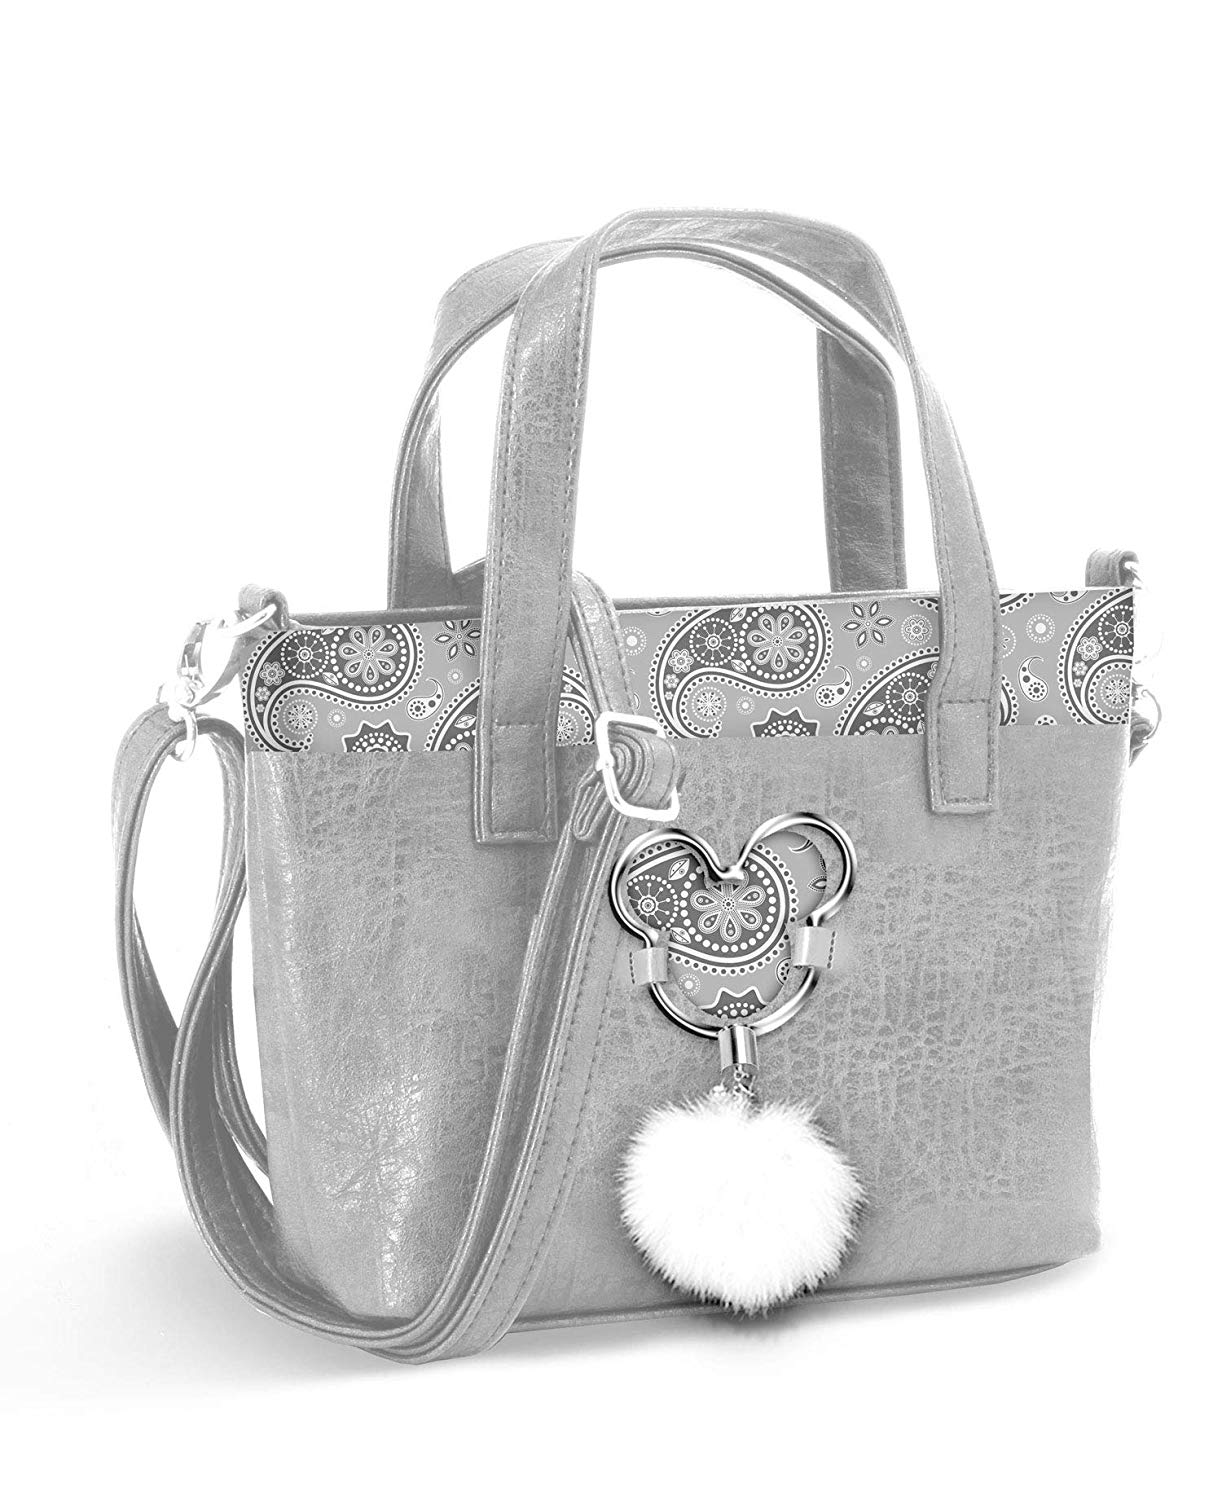 BORSA A MANO Messenger - in ECOPELLE - Disney MICKEY   Paisgrey